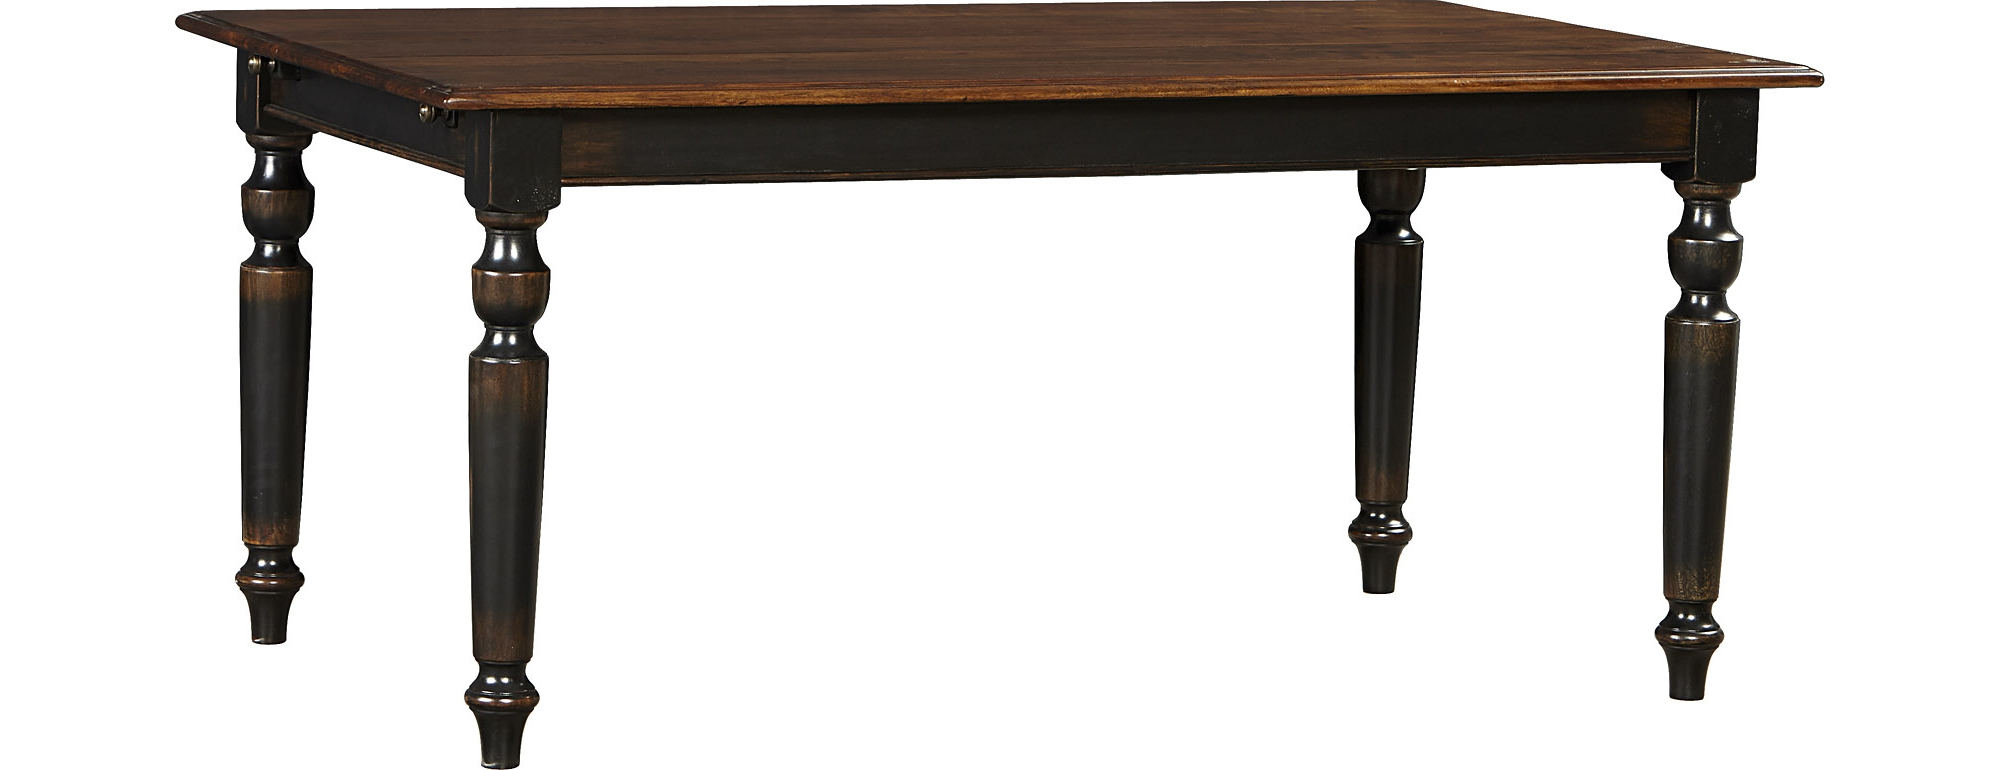 logan circle dining table | havertys Circular Dining Table